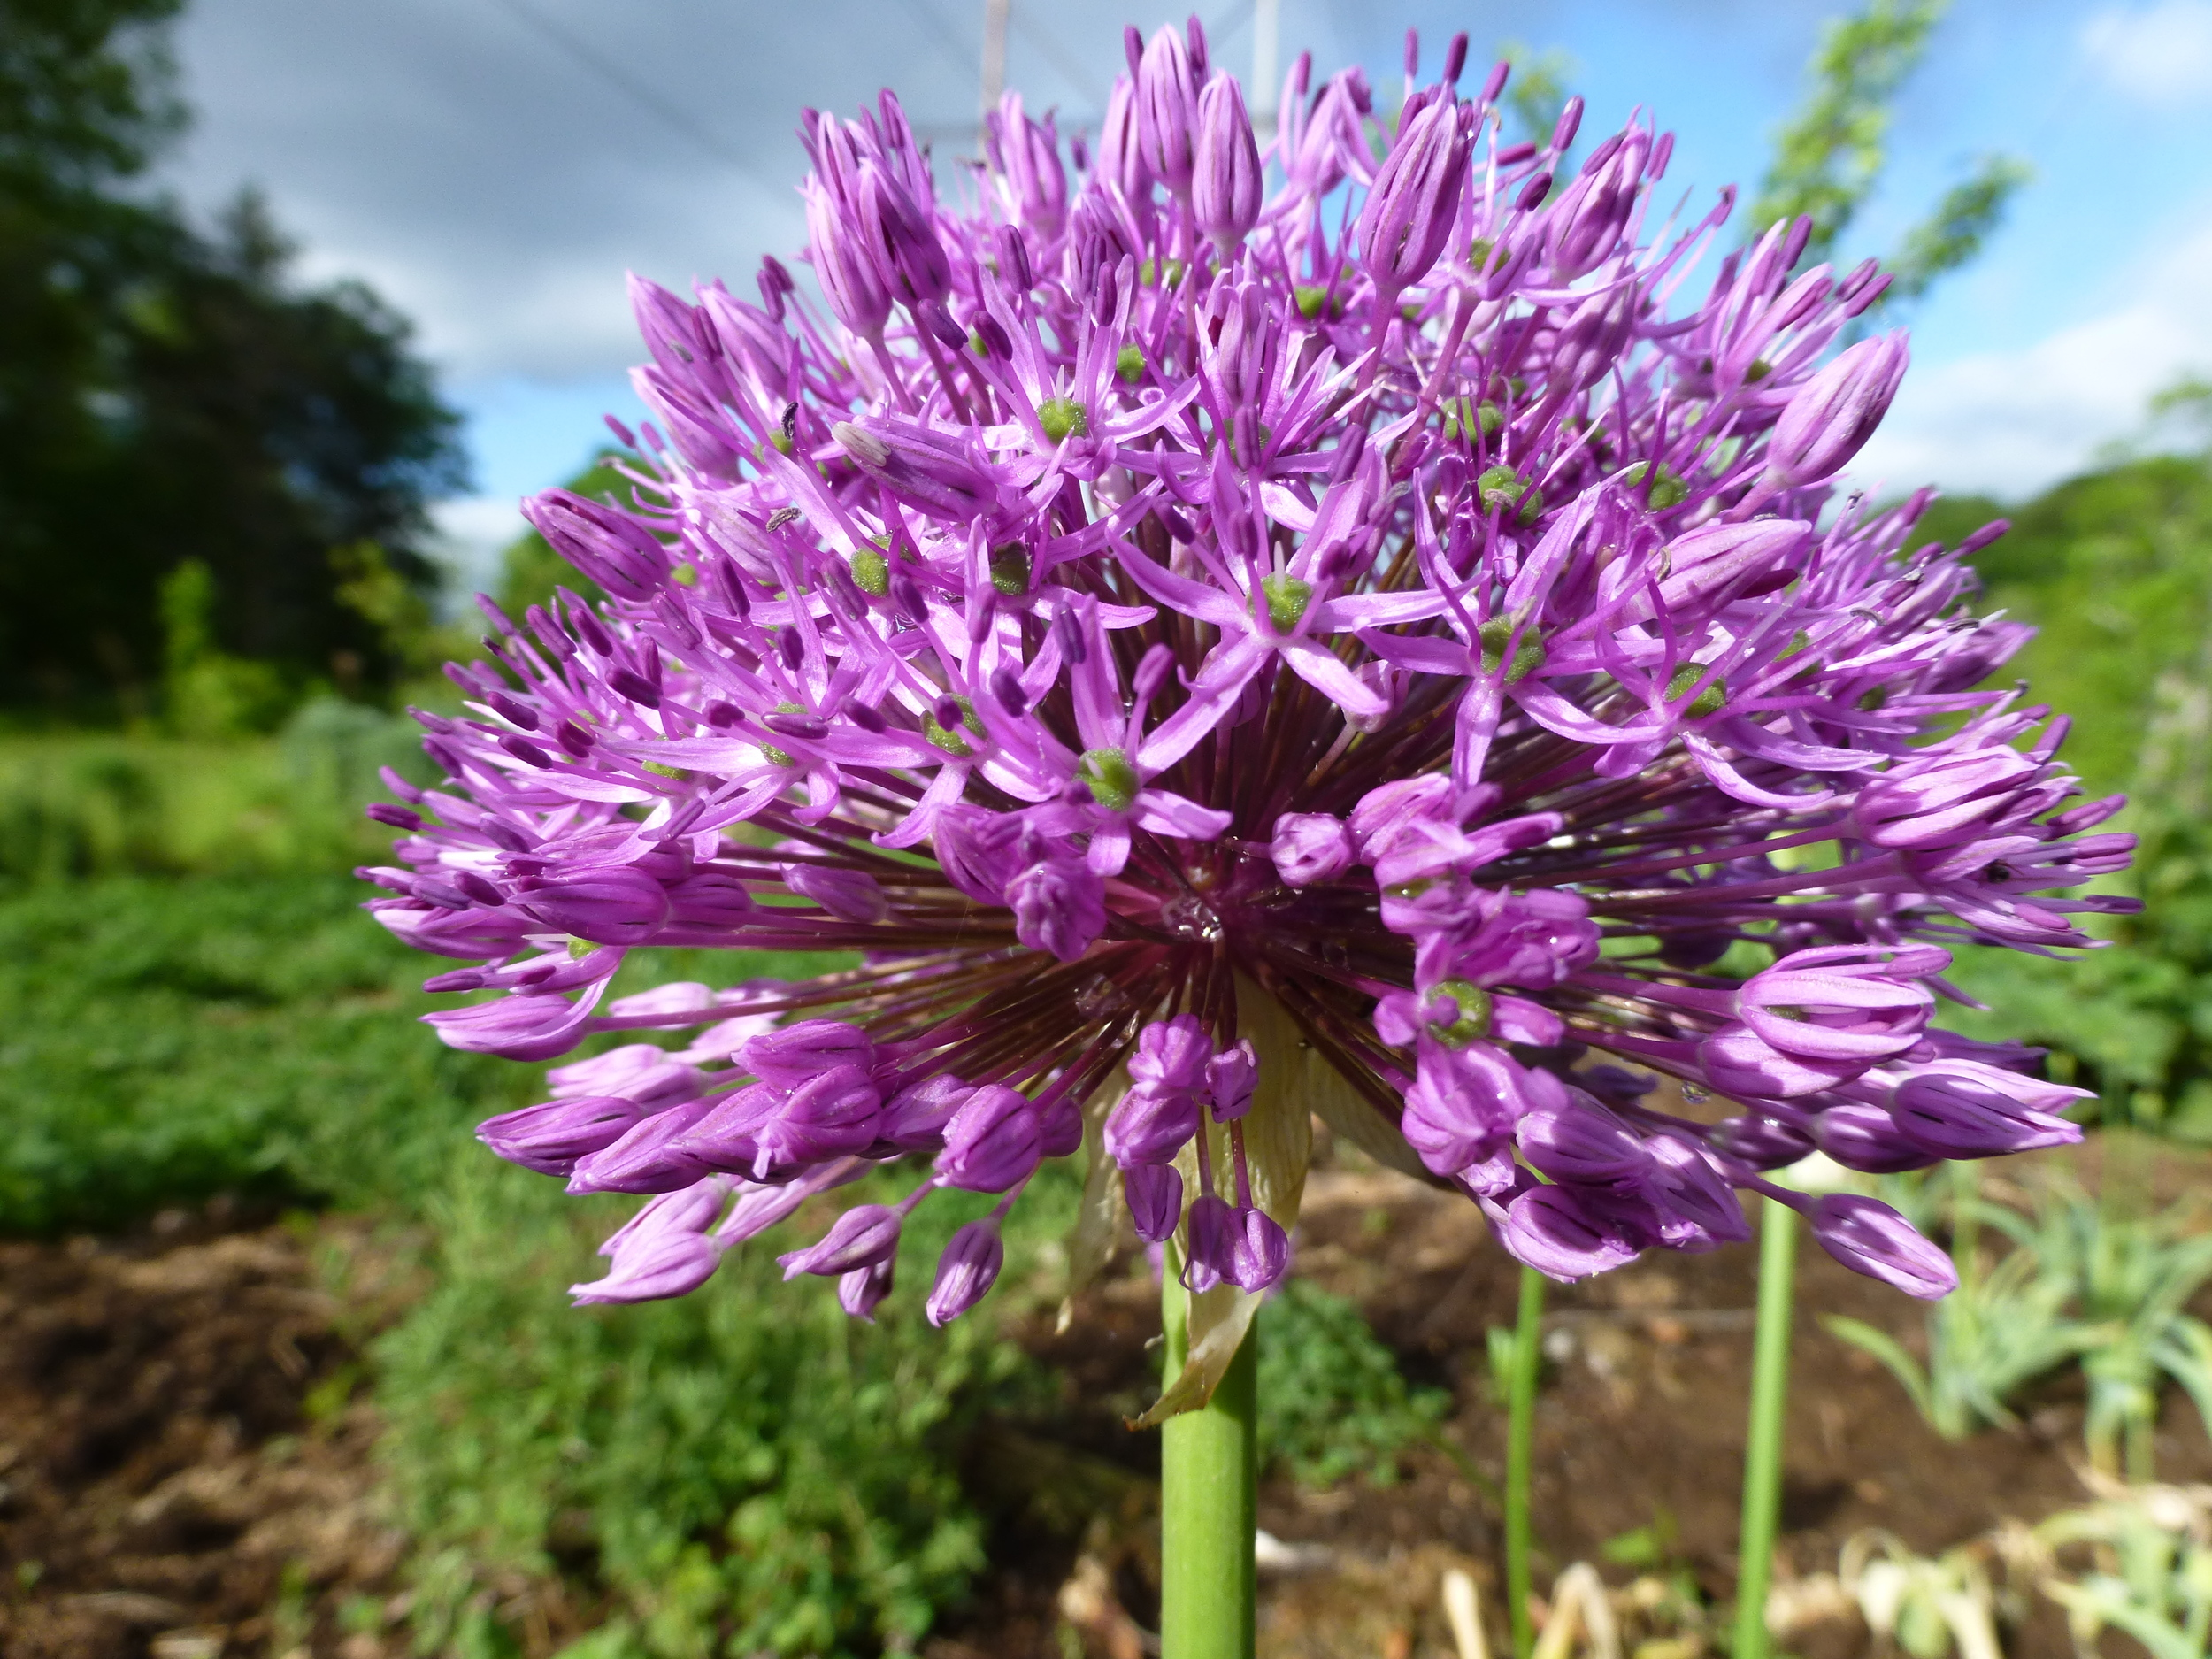 Allium aflatunense , a type of ornamental flowering onion. Note all of the stems meeting at one central point, a sure sign of an  Umbel.